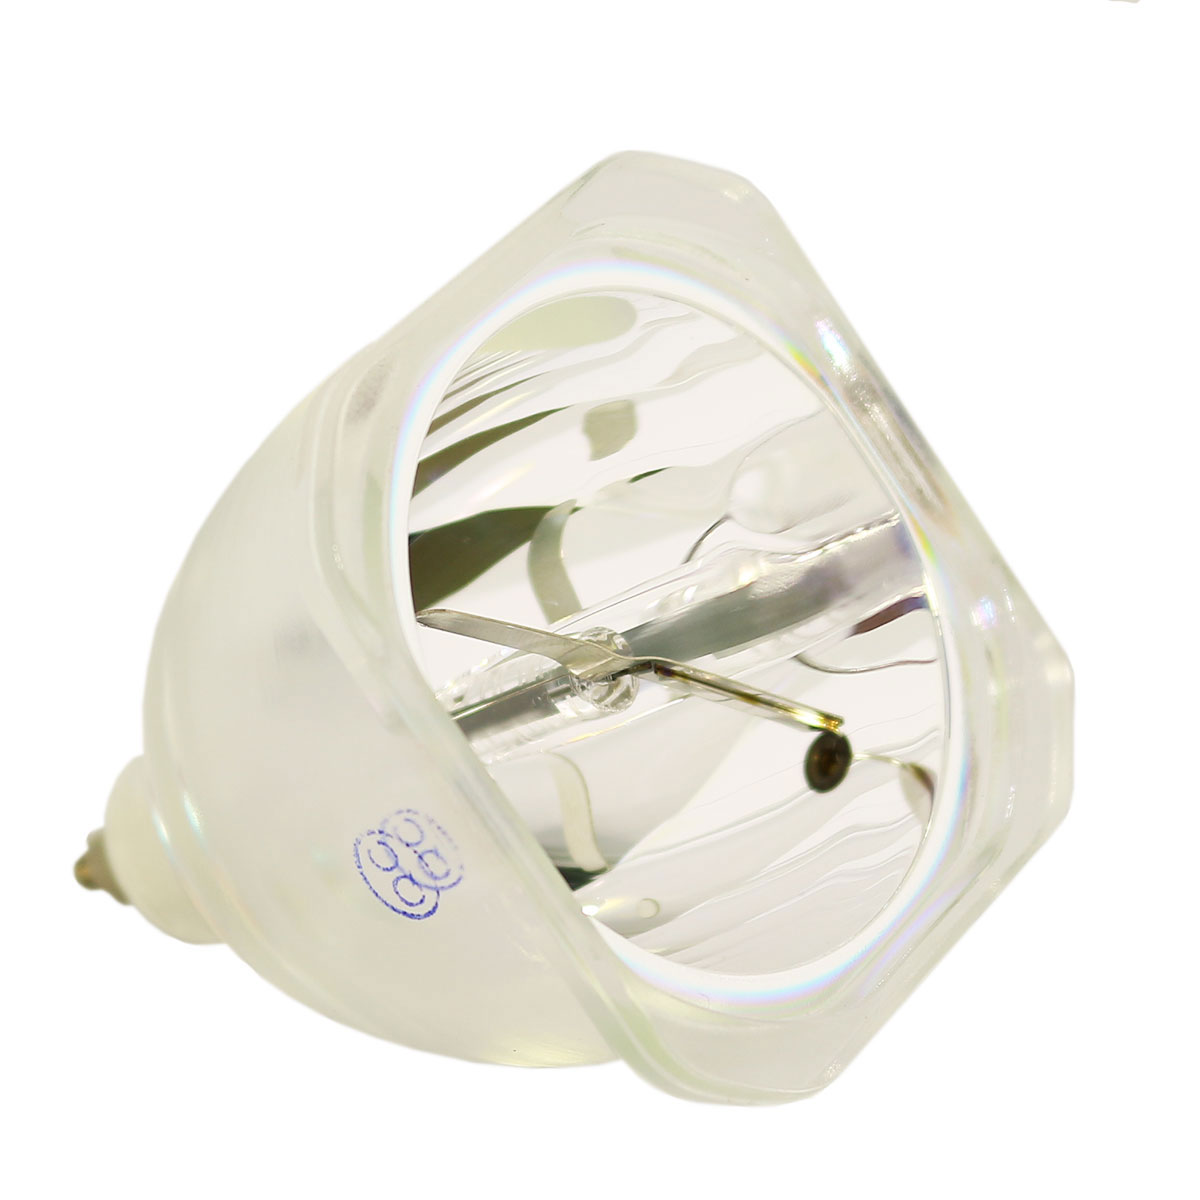 Lutema Platinum for HP MP1400 Projector Lamp (Bulb Only) - image 4 of 5